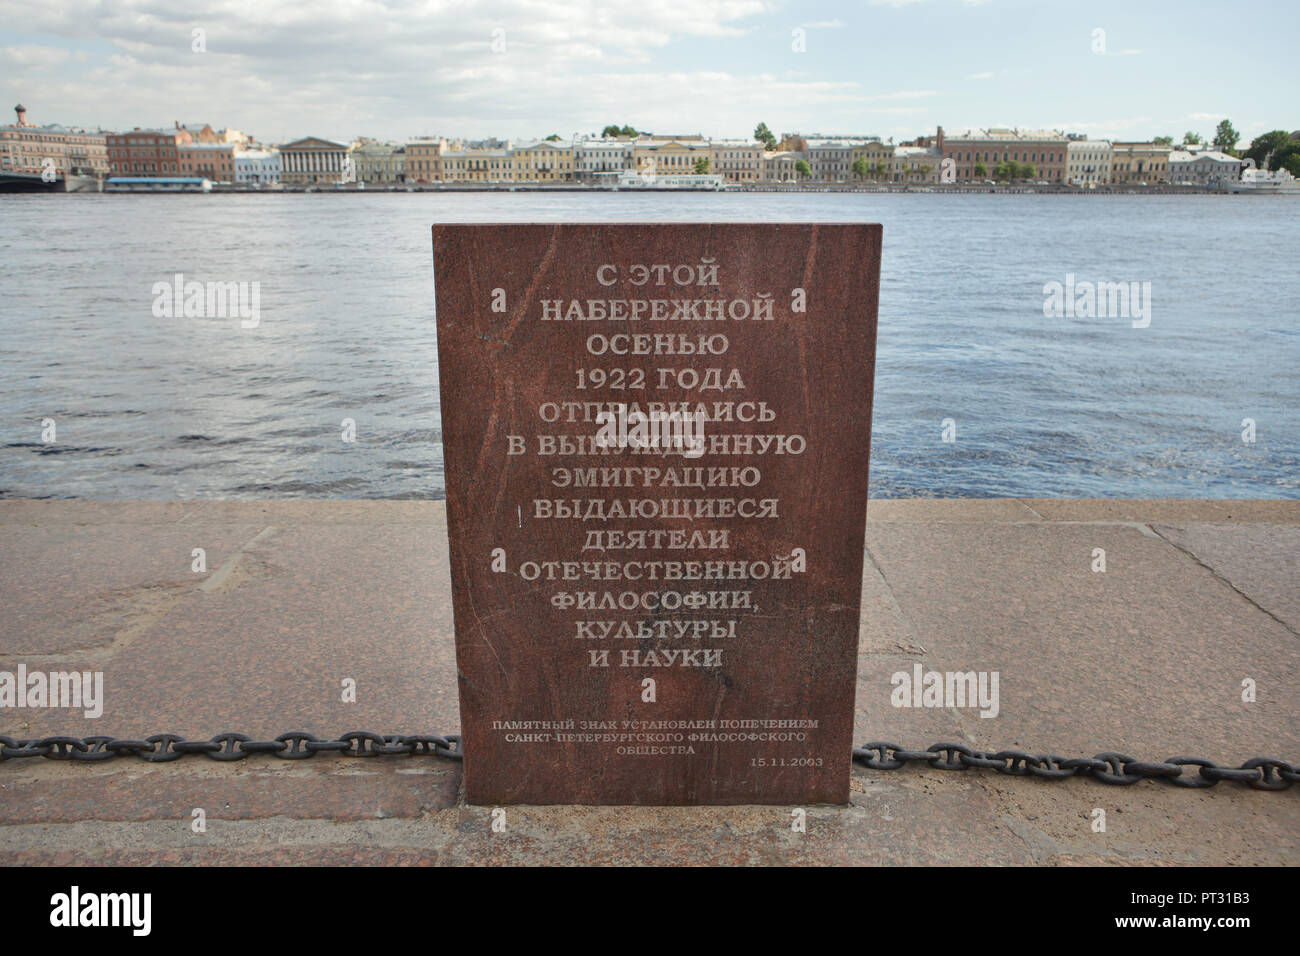 Commemorative sign marking the place from where the Philosophers' ships with Russian intellectuals were departed to exile from Bolshevik Russia in autumn 1922 on the embankment of the Neva River in Saint Petersburg, Russia. Text in Russian means: Prominent figures of Russian philosophy, culture and science were expelled to emigration from this embankment in the autumn of 1922. The commemorative sign was installed by the Saint Petersburg Philosophic Society and unveiled on 15 November 2003. - Stock Image